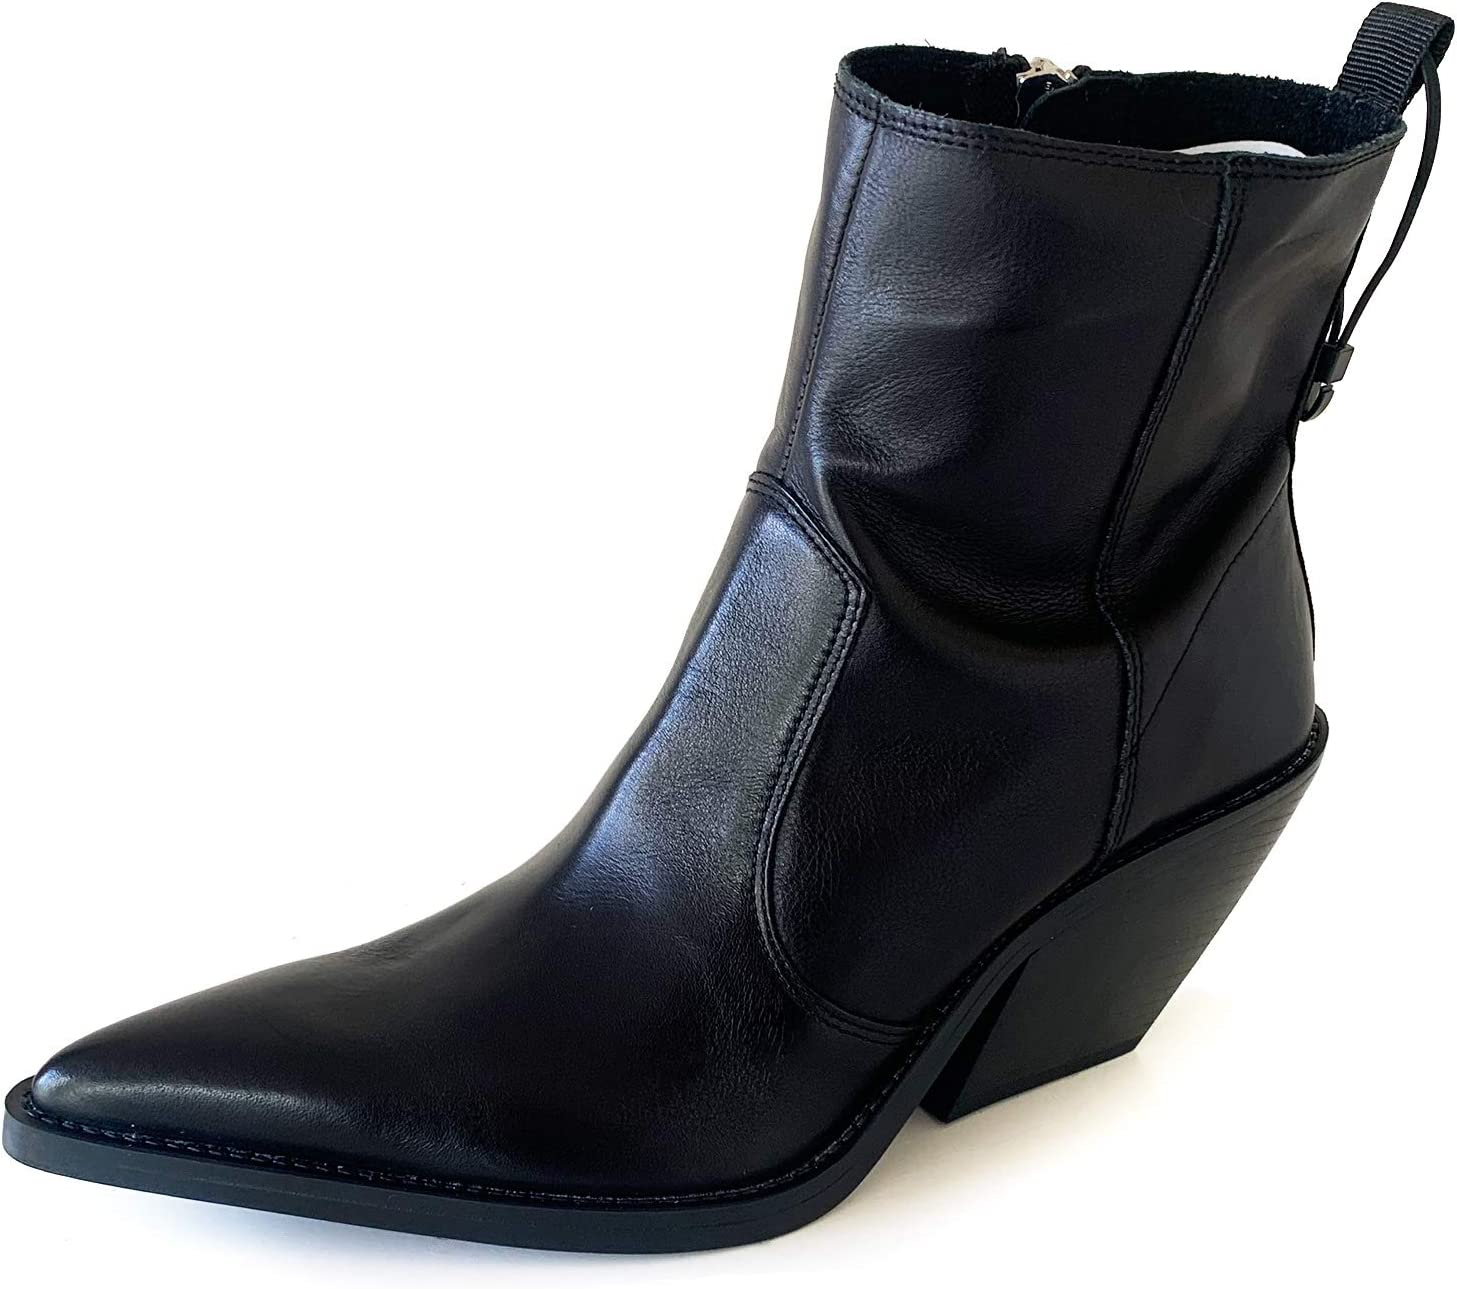 Soft Leather Cowboy-Heel Ankle Boots